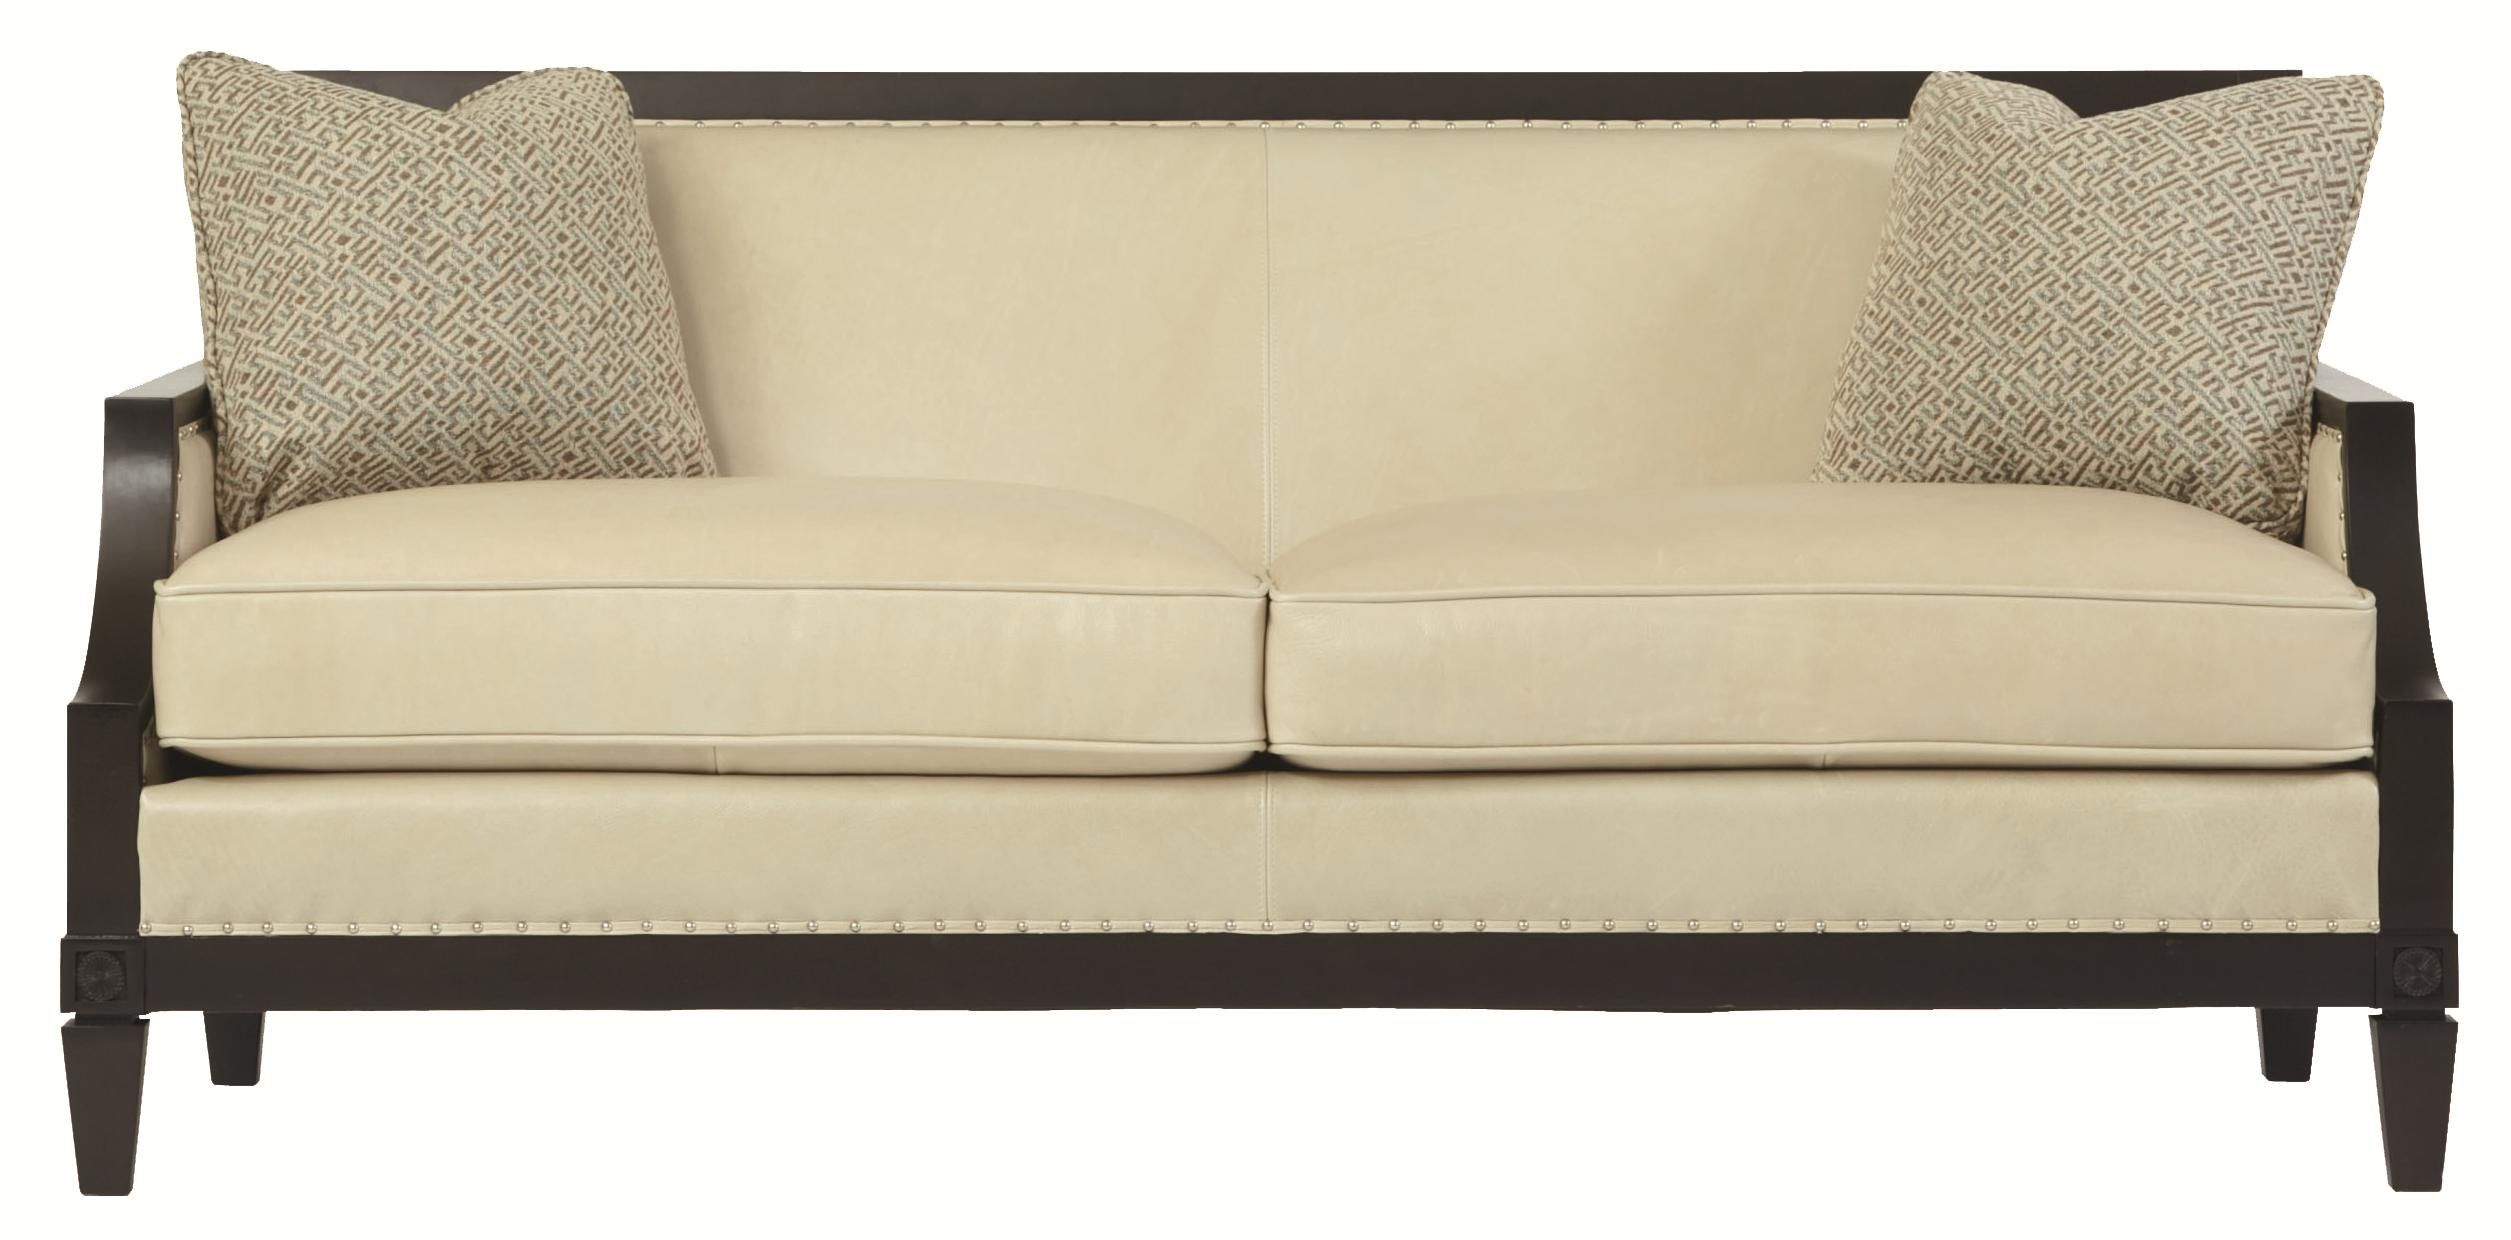 Bernhardt Sofas Clearance Piel Madrid Ofertas Interiors Morris Sofa With Decorative Nail Head Trim By